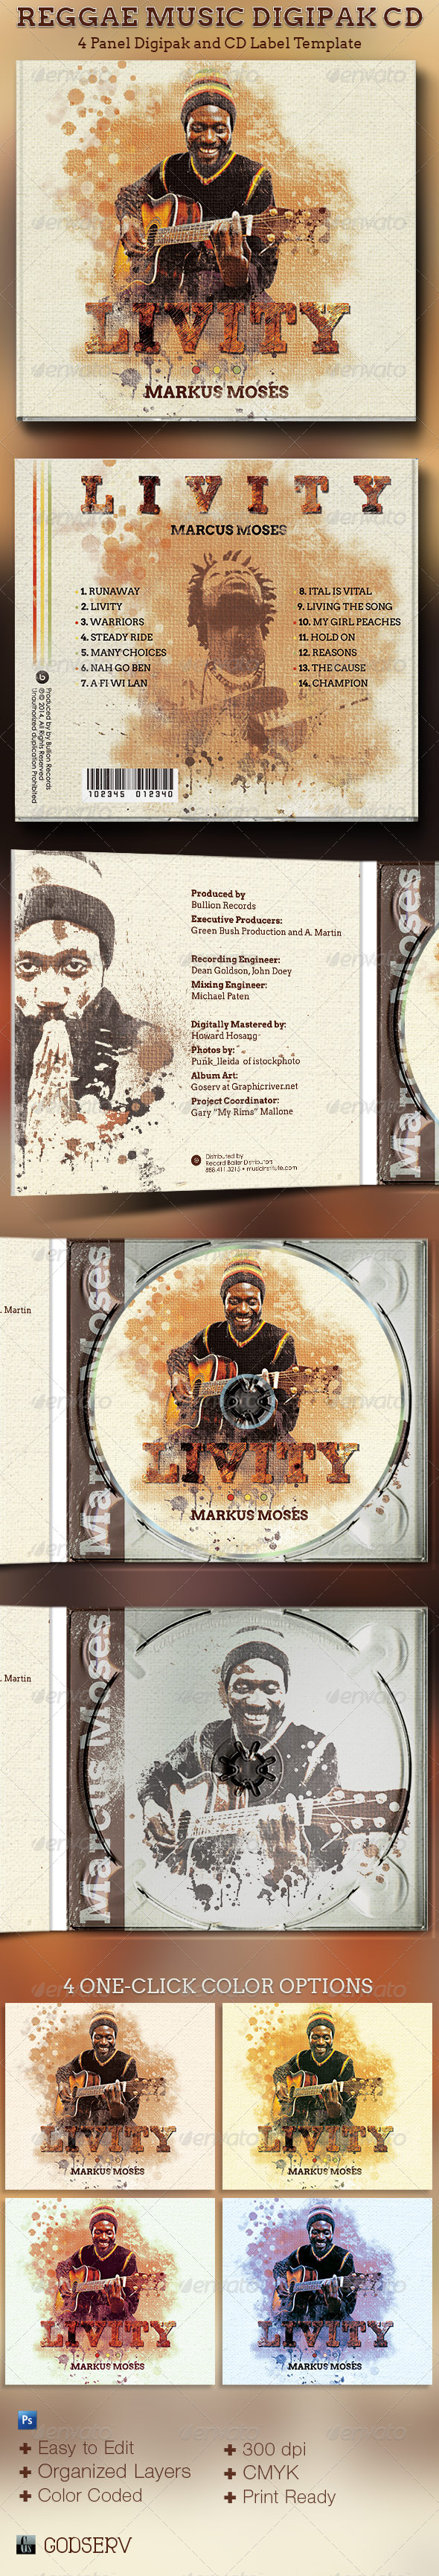 Reggae Music 4 Panel Digipak CD Artwork Template